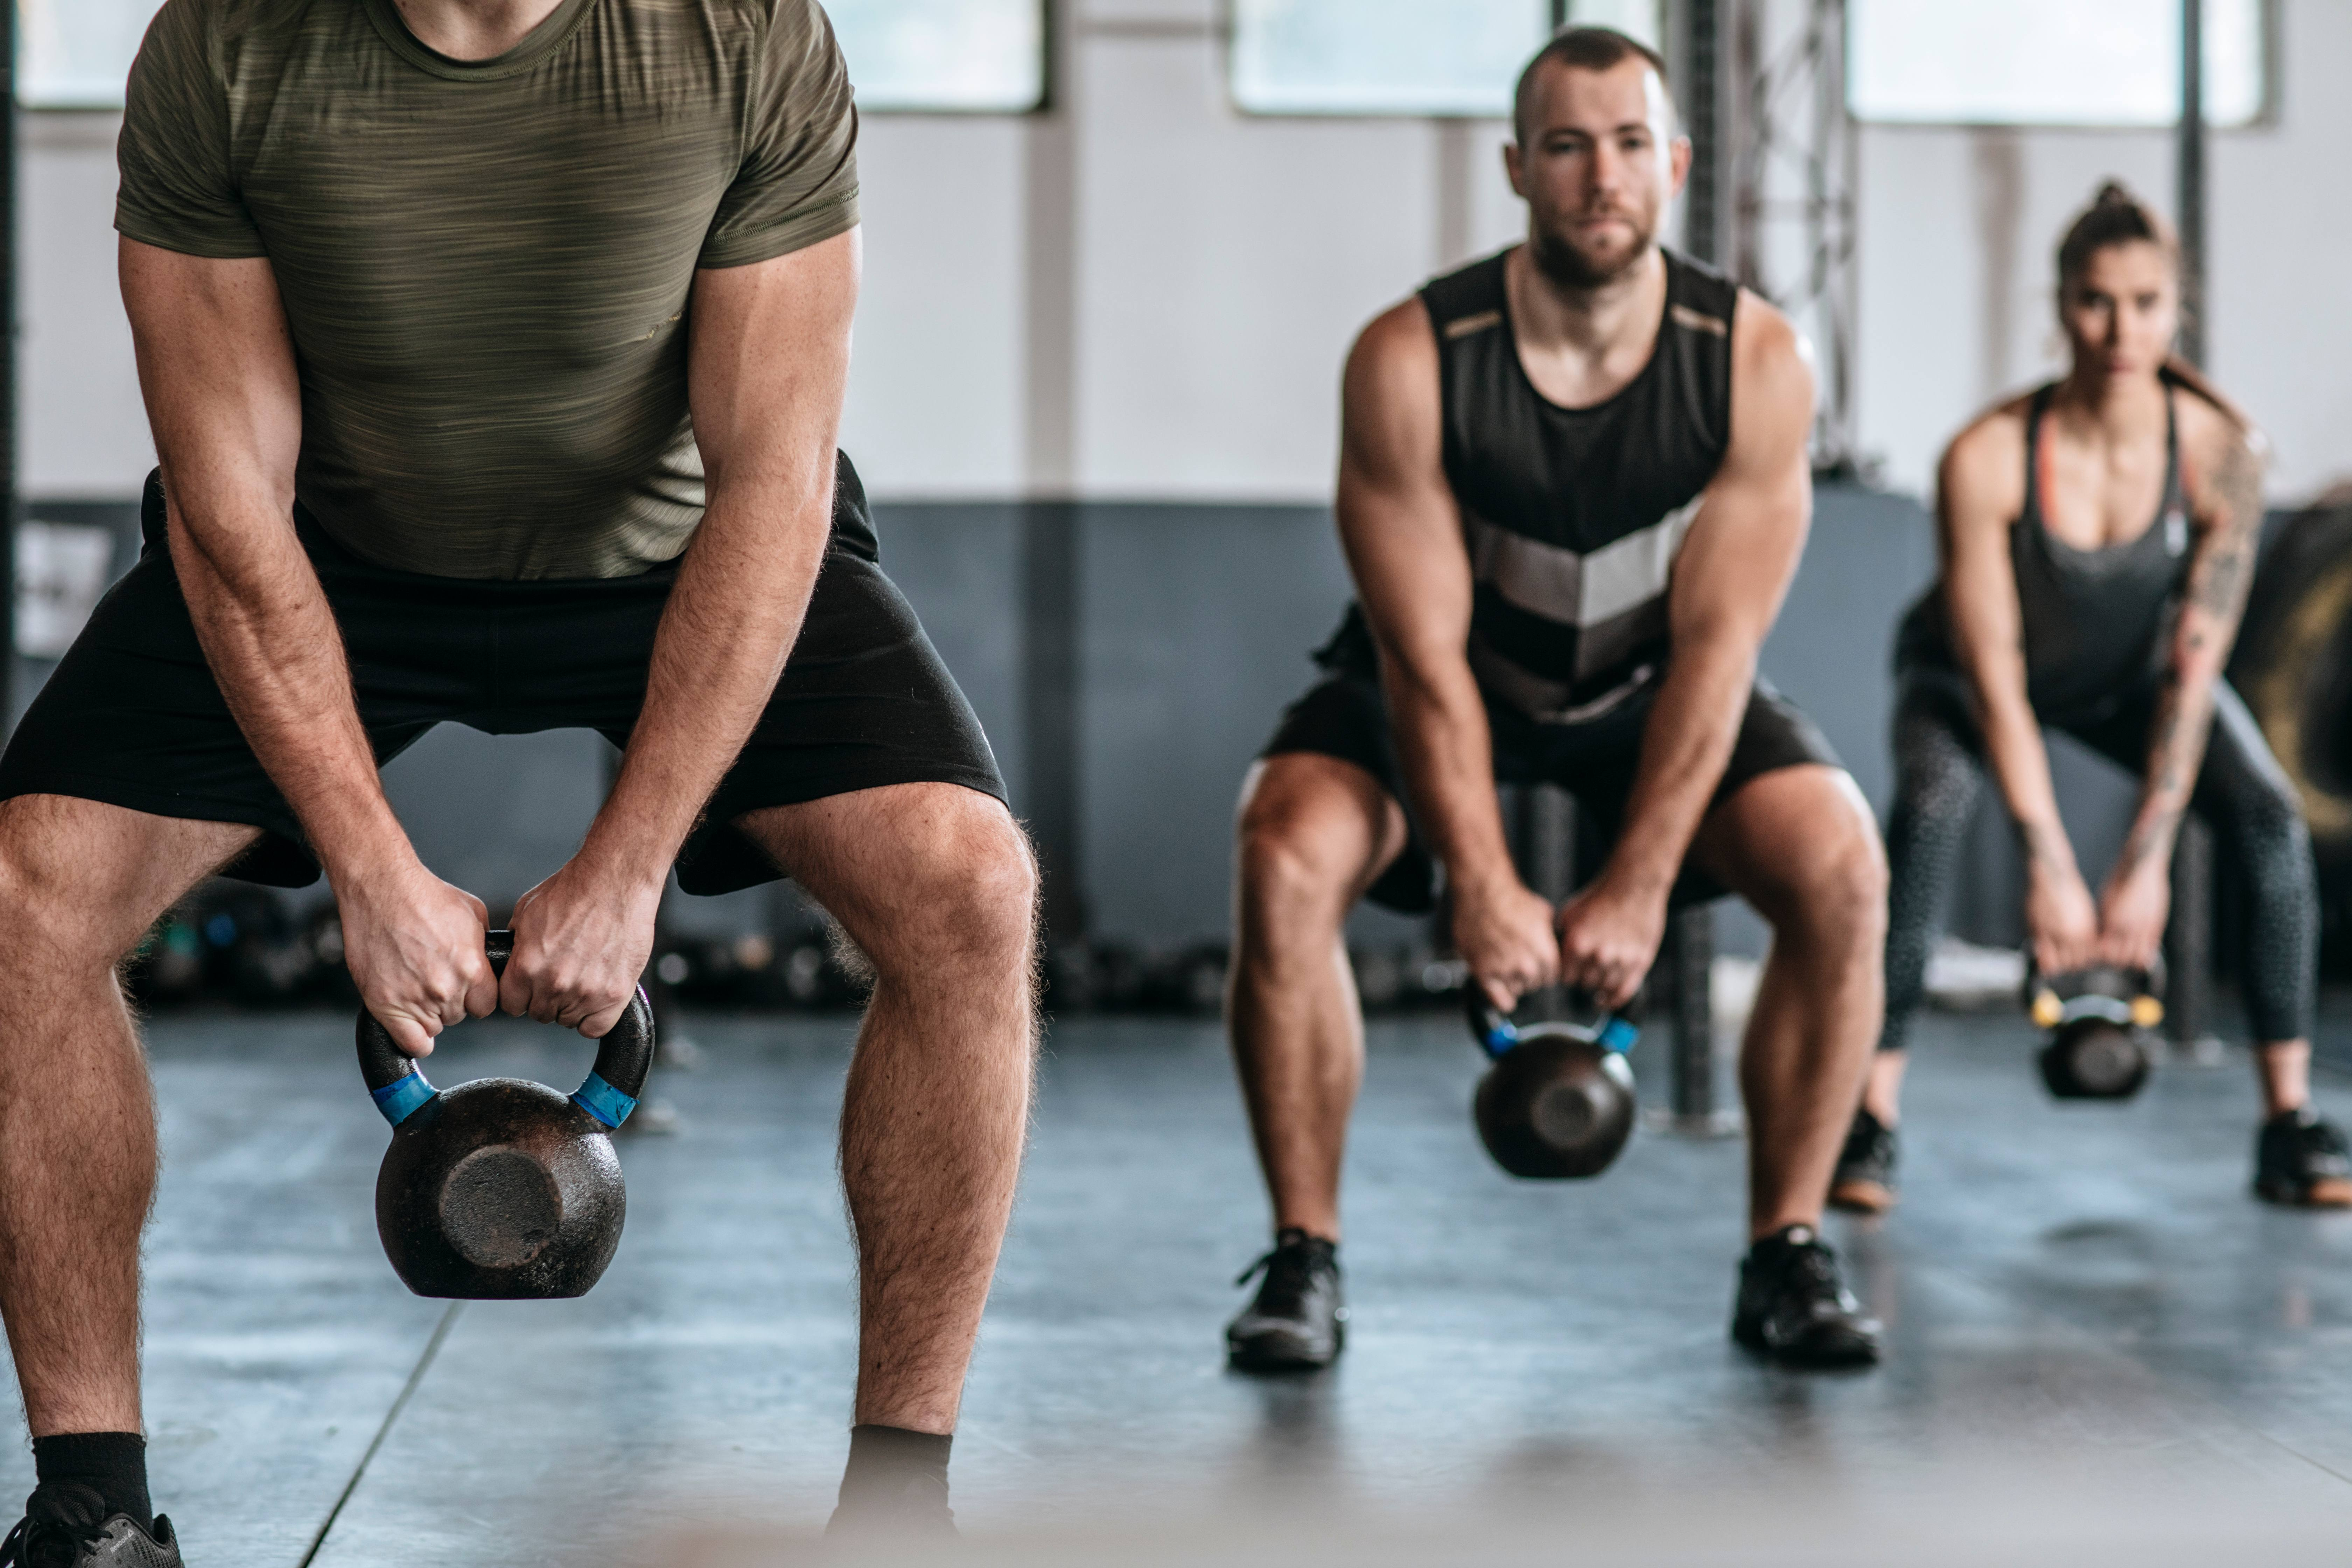 Group of people lifting kettlebells at gym